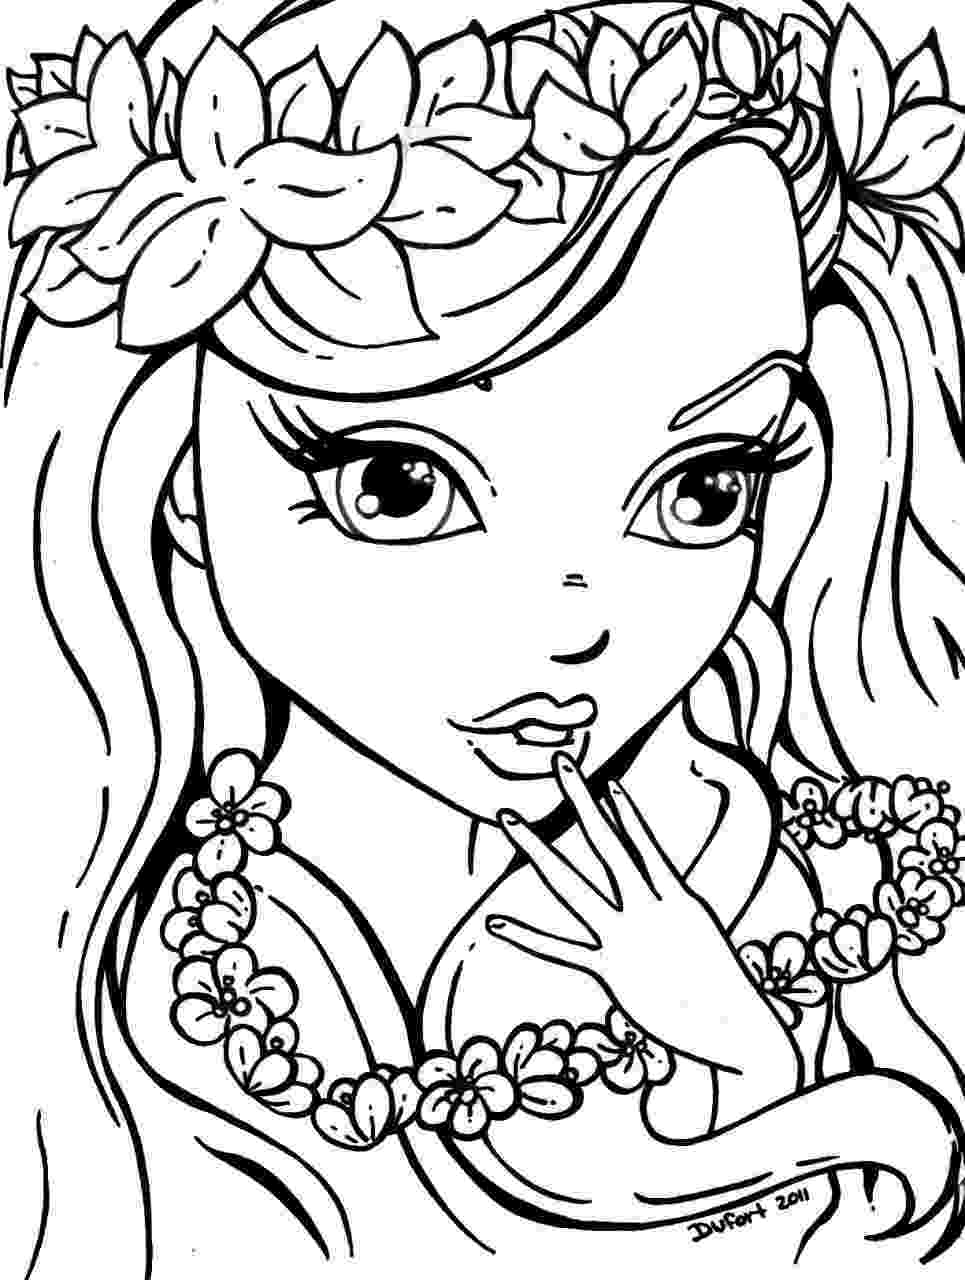 unicorn coloring pages for girls cute girl and unicorn in roses garden outline drawing unicorn pages girls coloring for